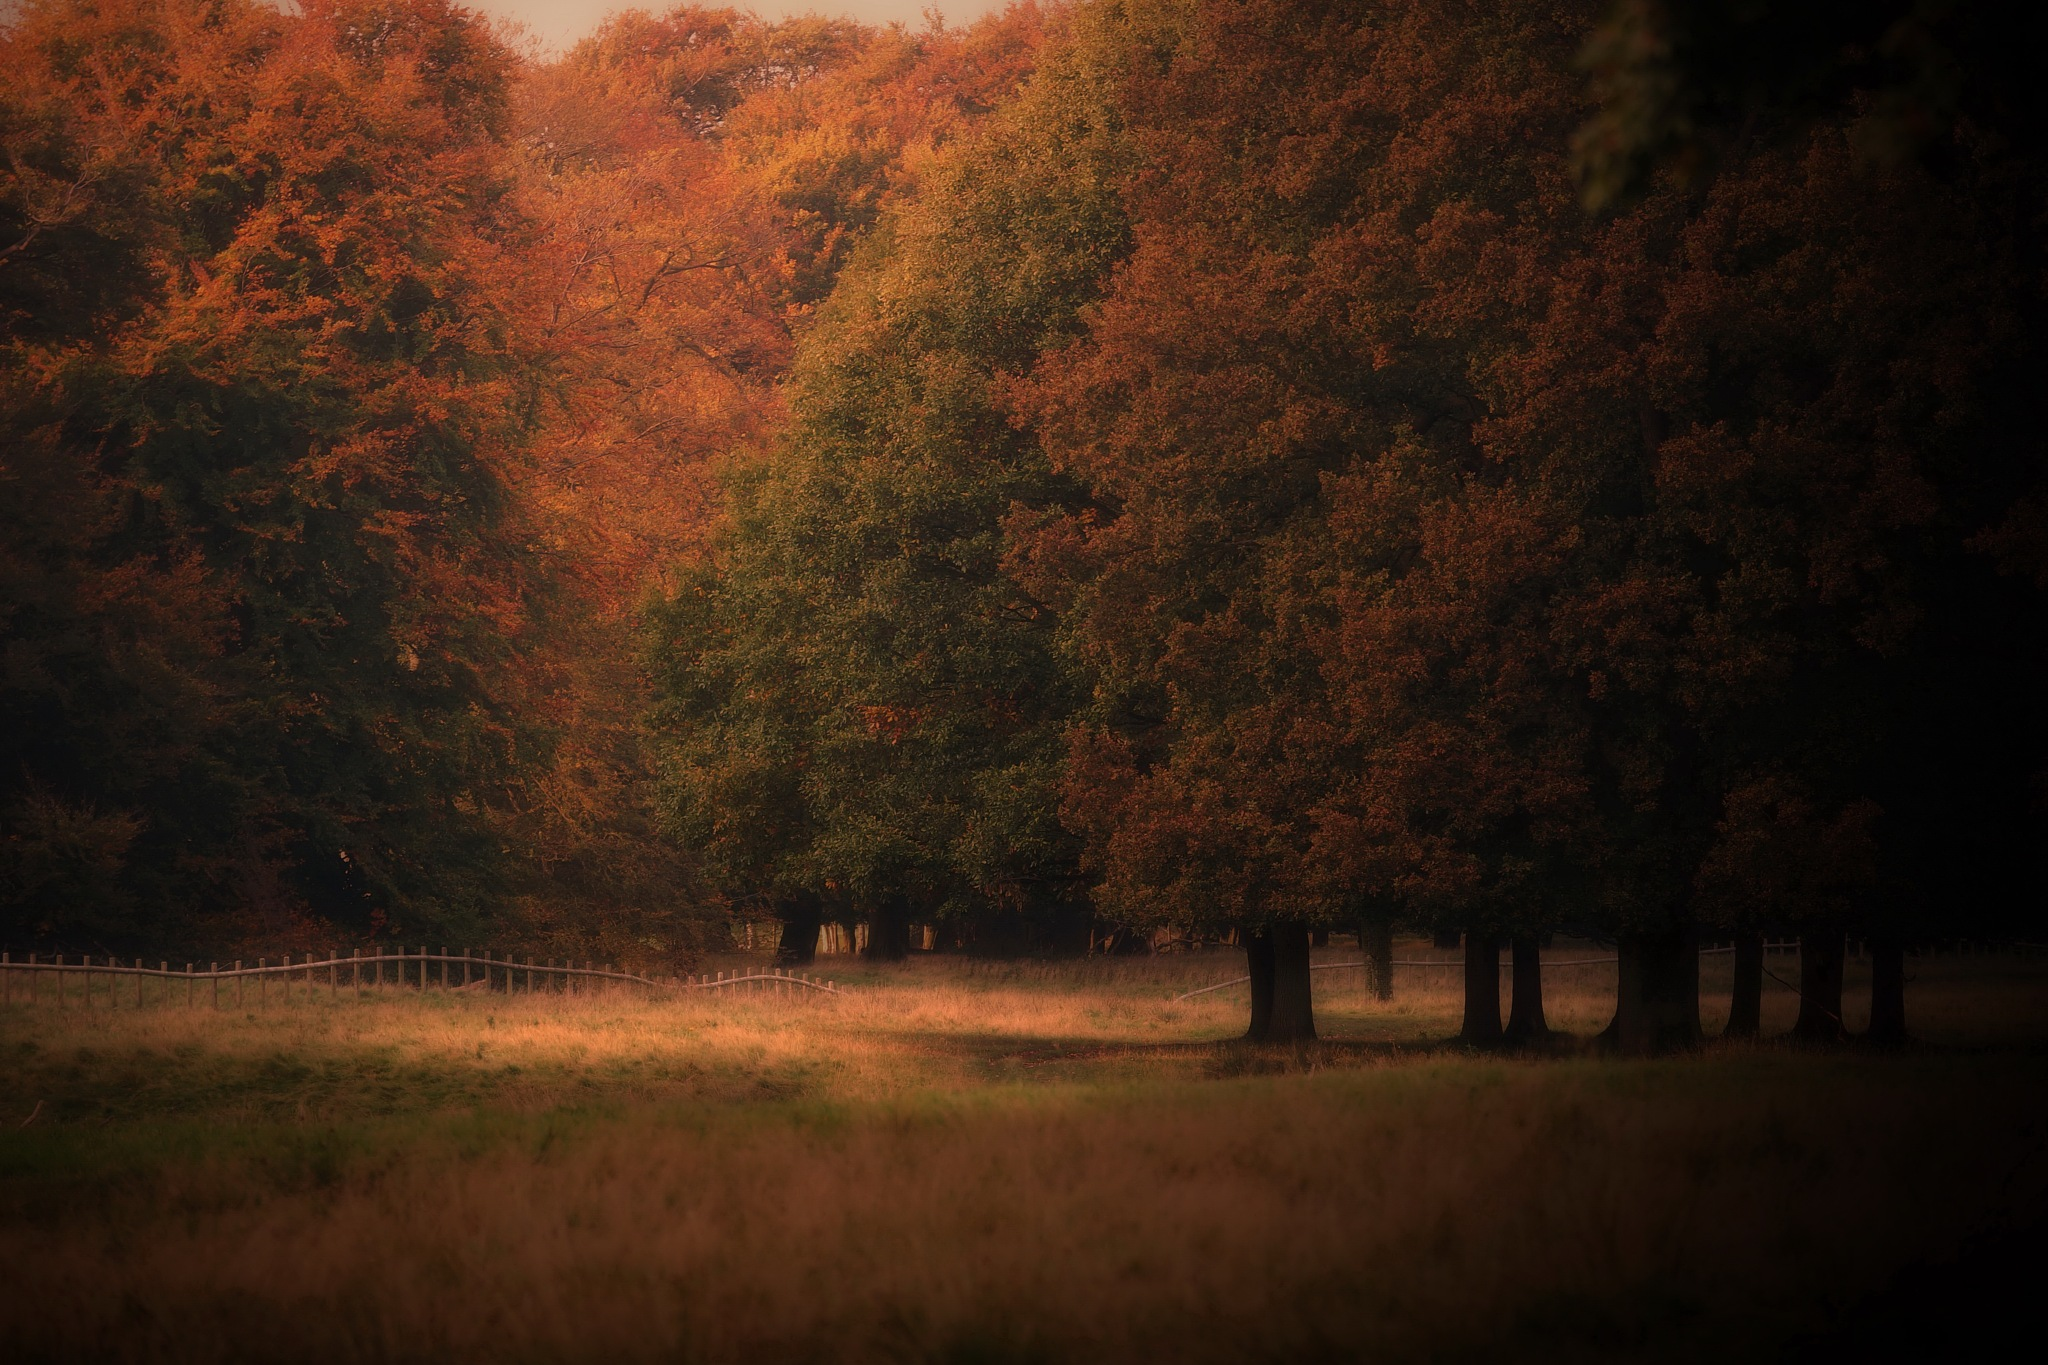 Autumn at the doorstep by NavidQureshi